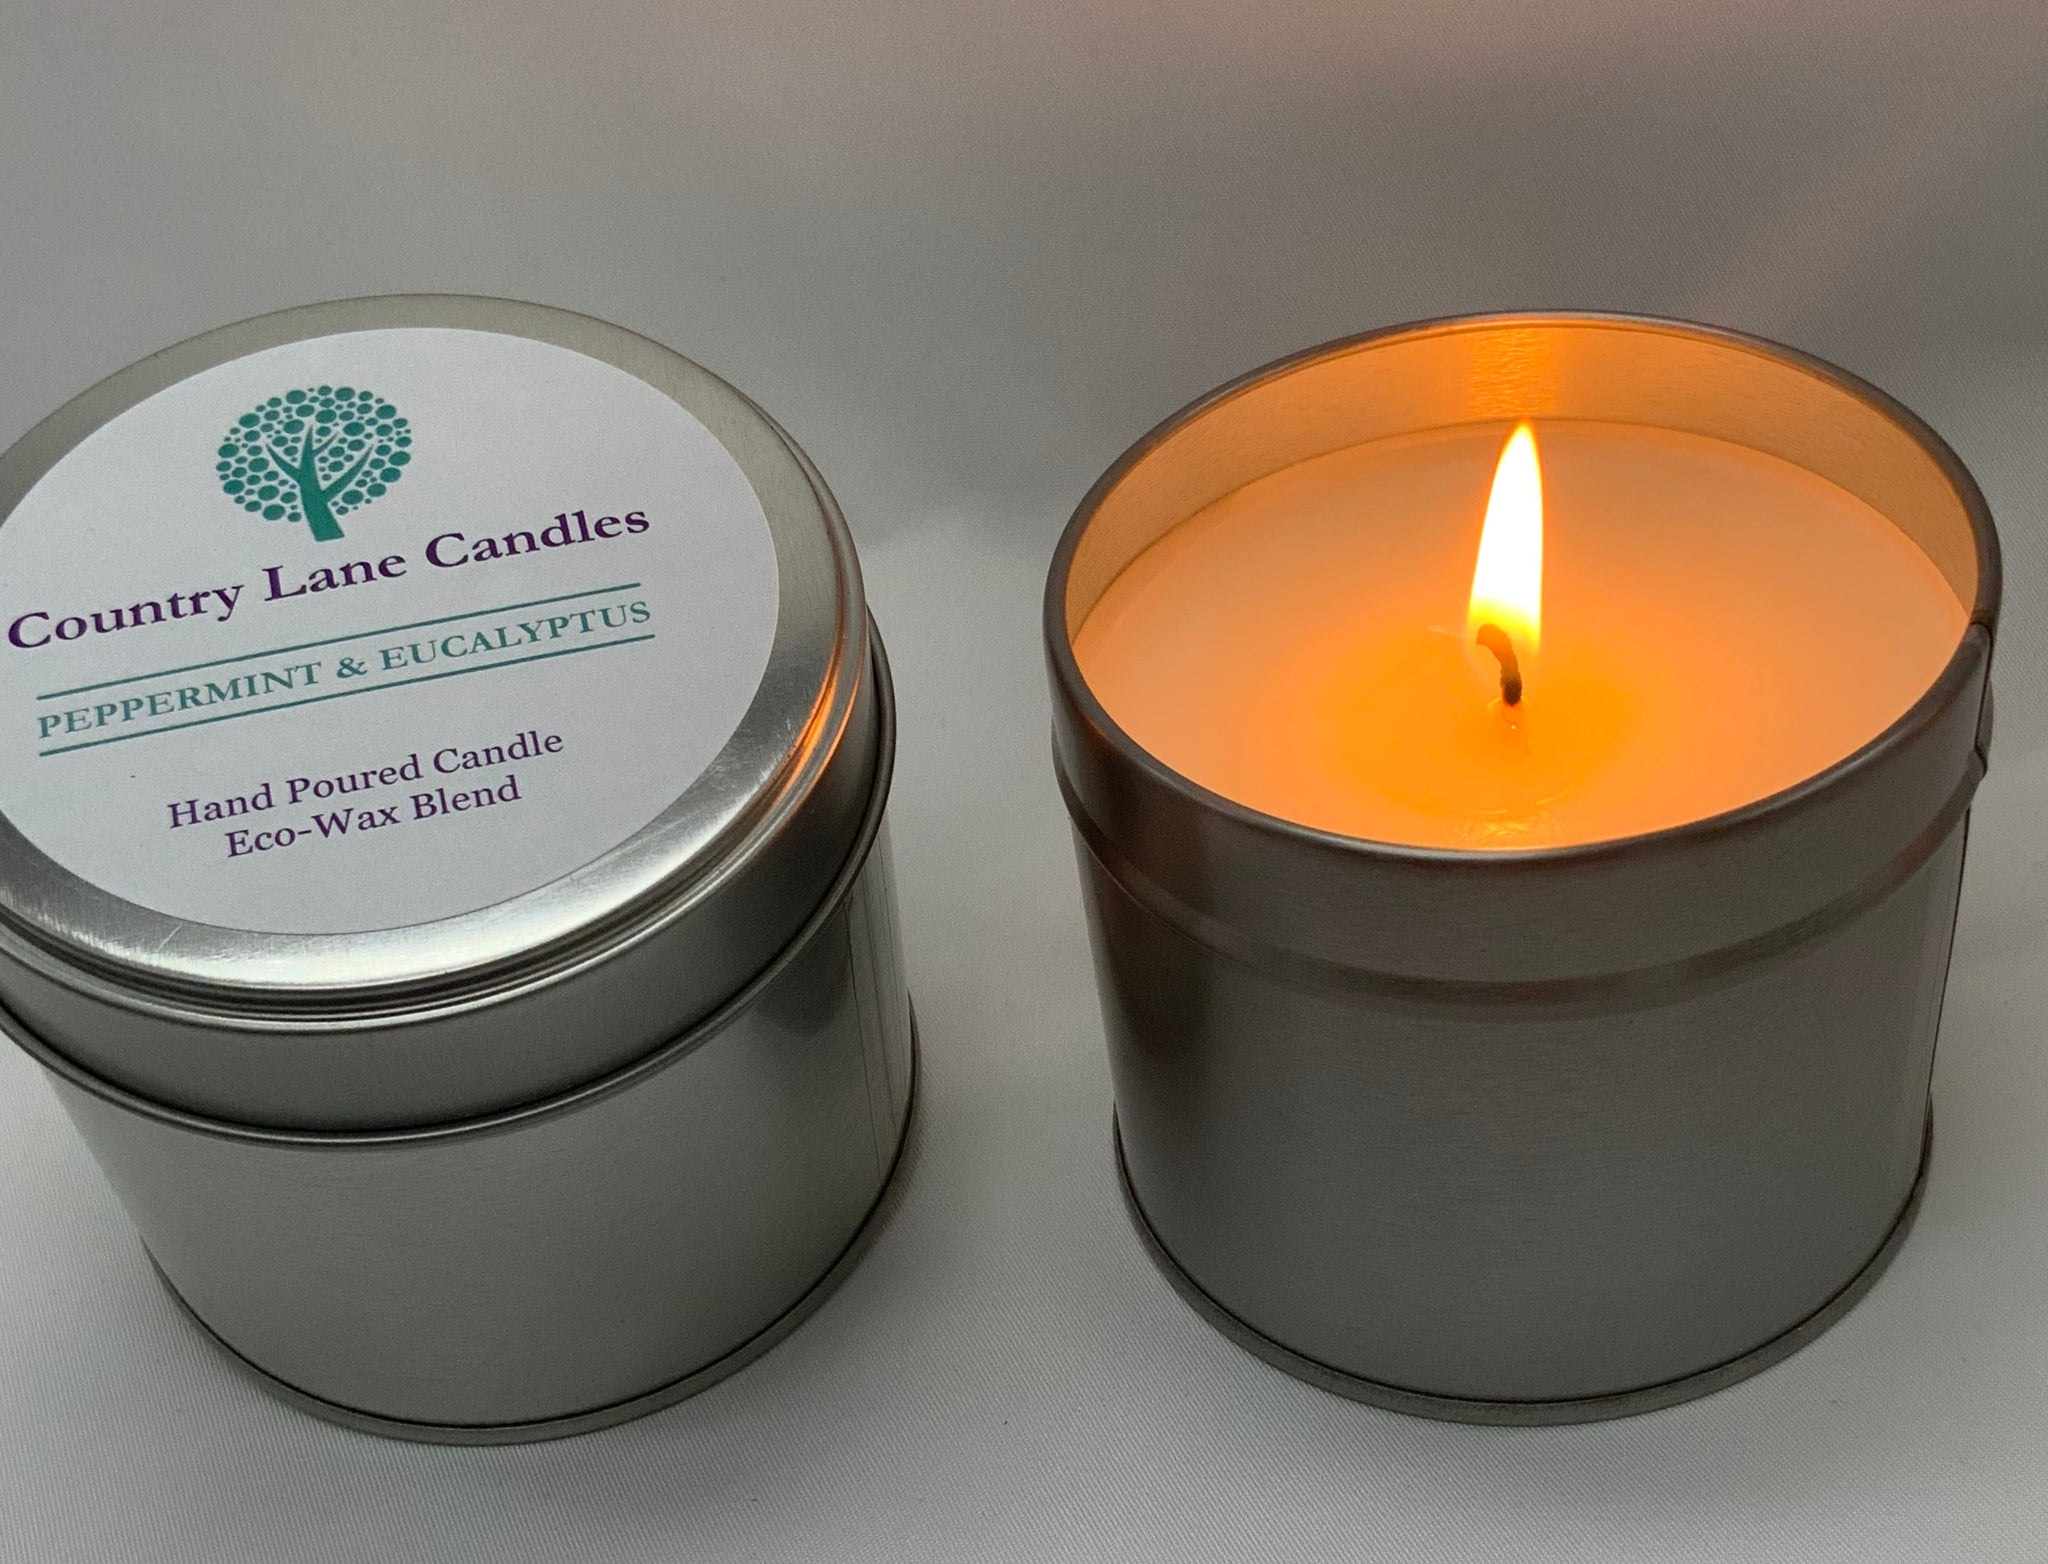 Peppermint & Eucalyptus Candle